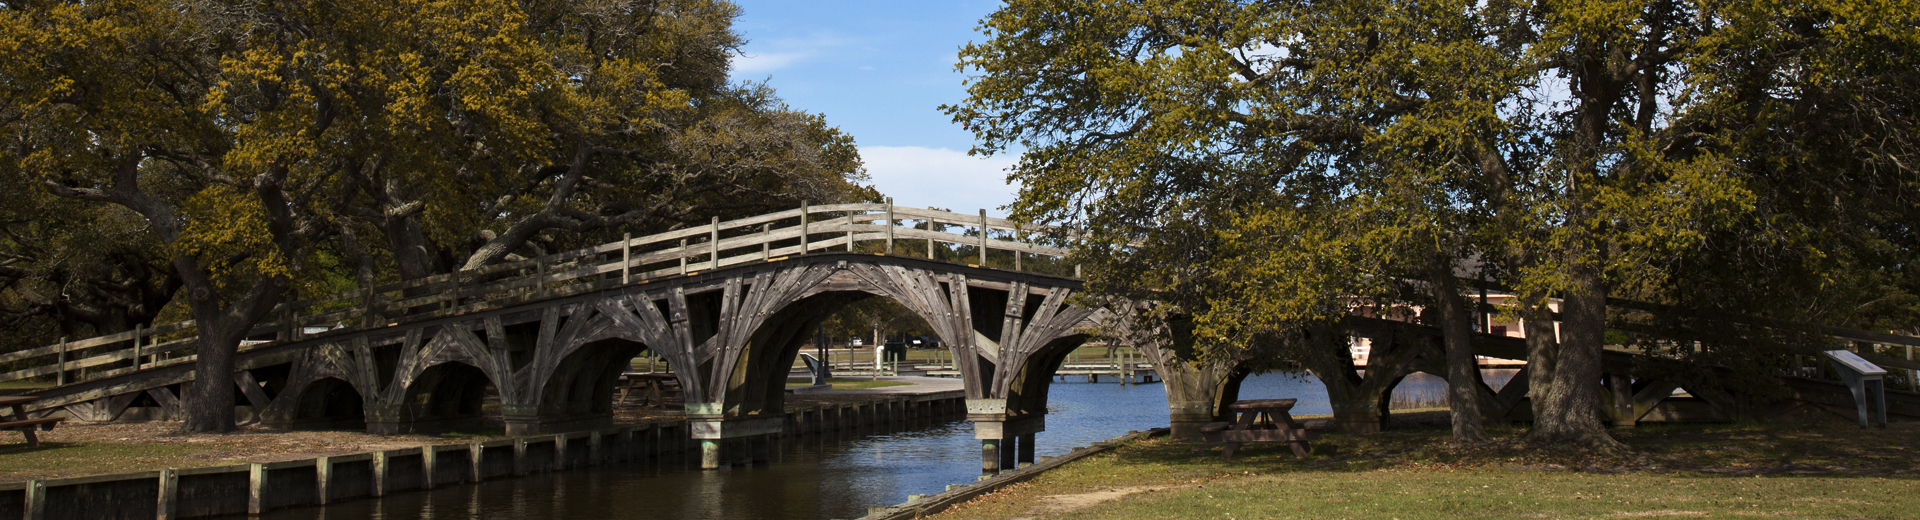 historic footbridge in corolla